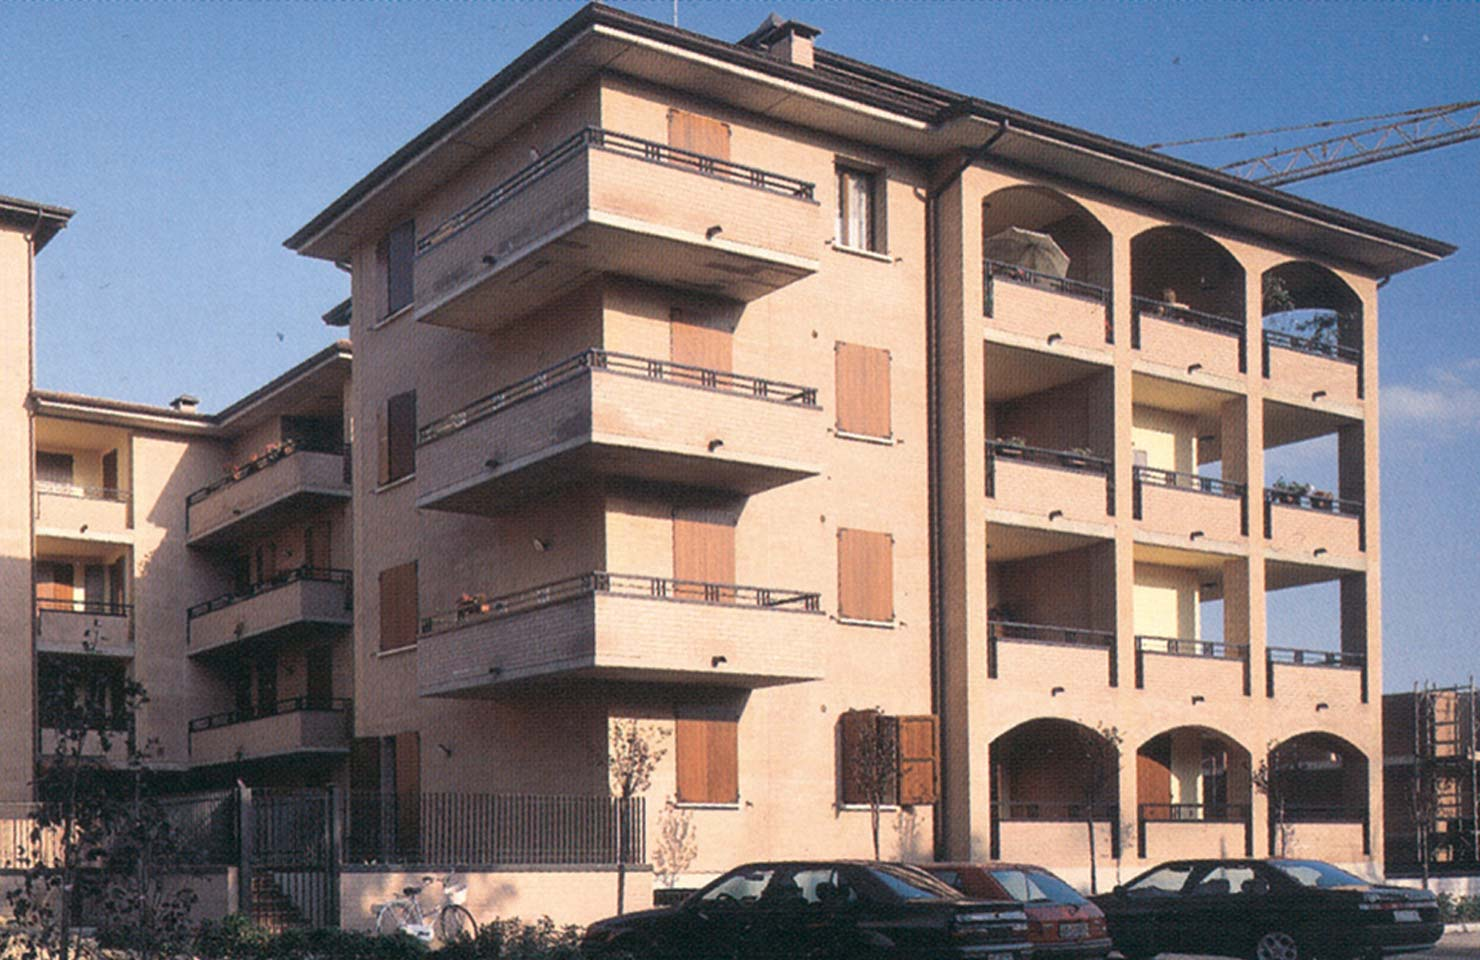 Complesso residenziale – Castelfranco Emilia (MB)